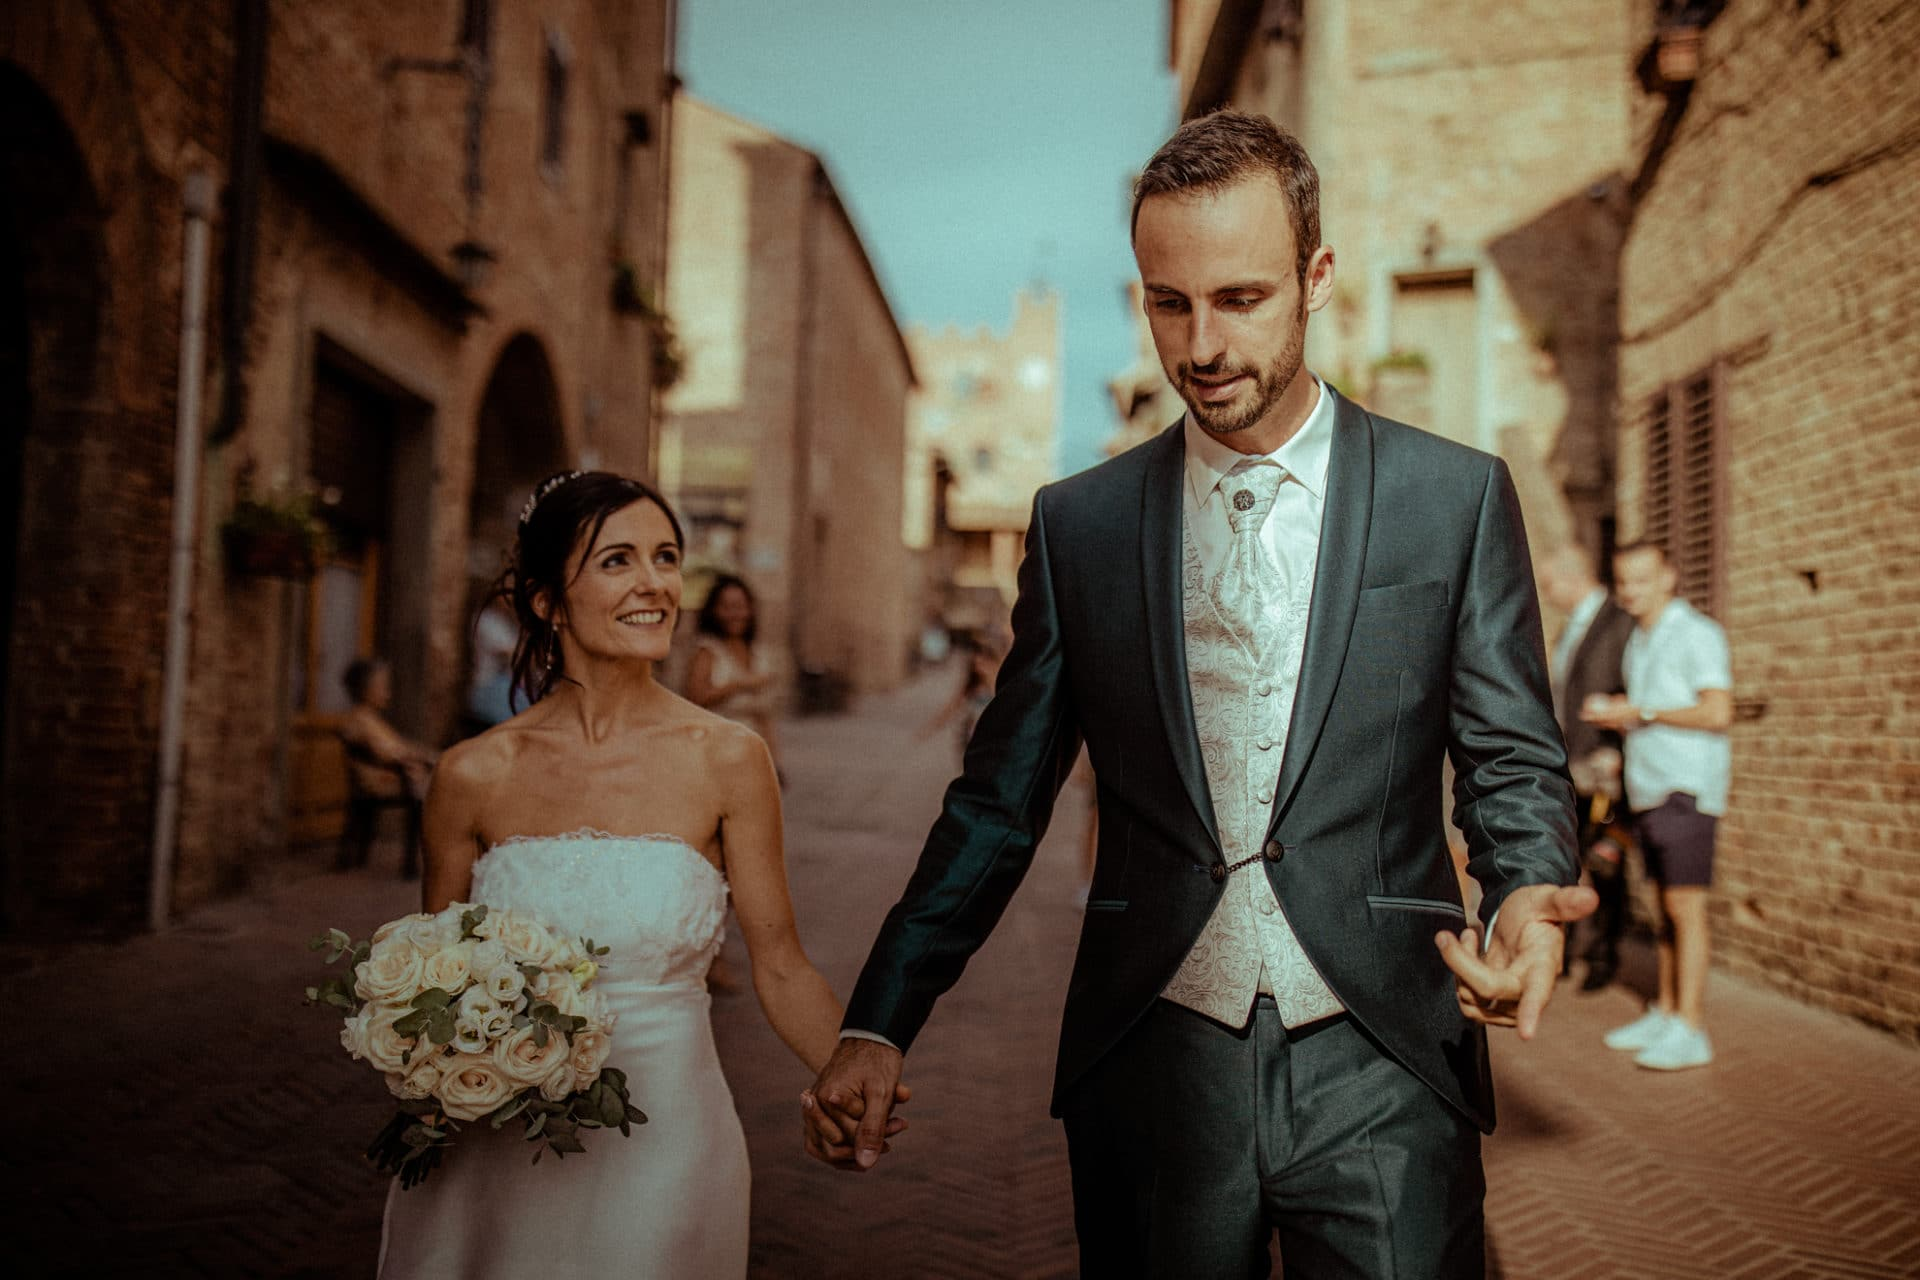 just married in tuscany - destination wedding photographer france